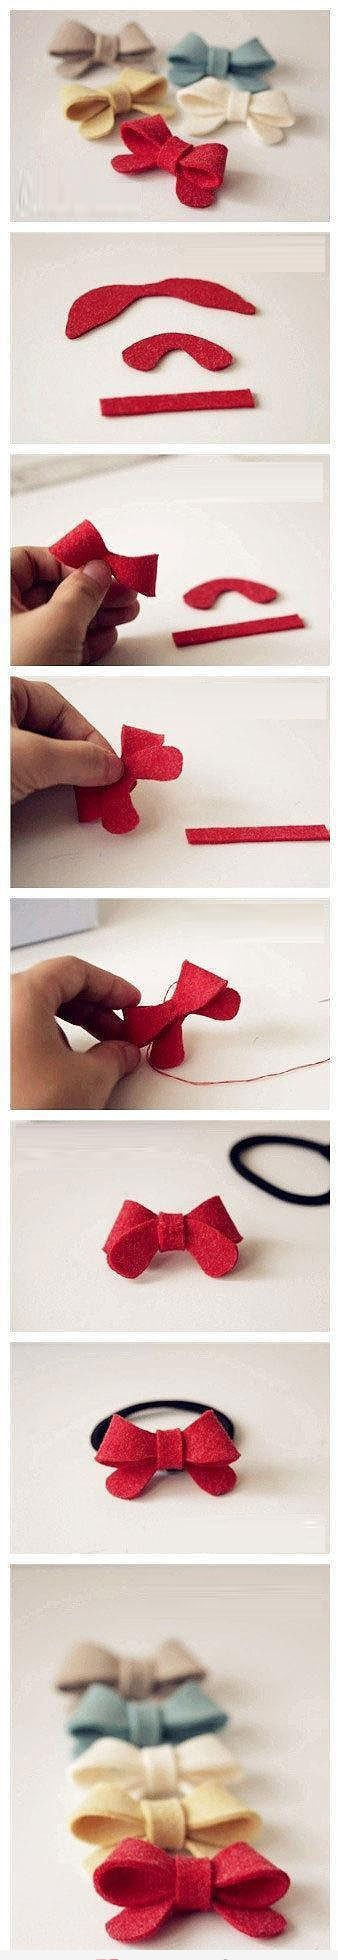 DIY Fashion (8)